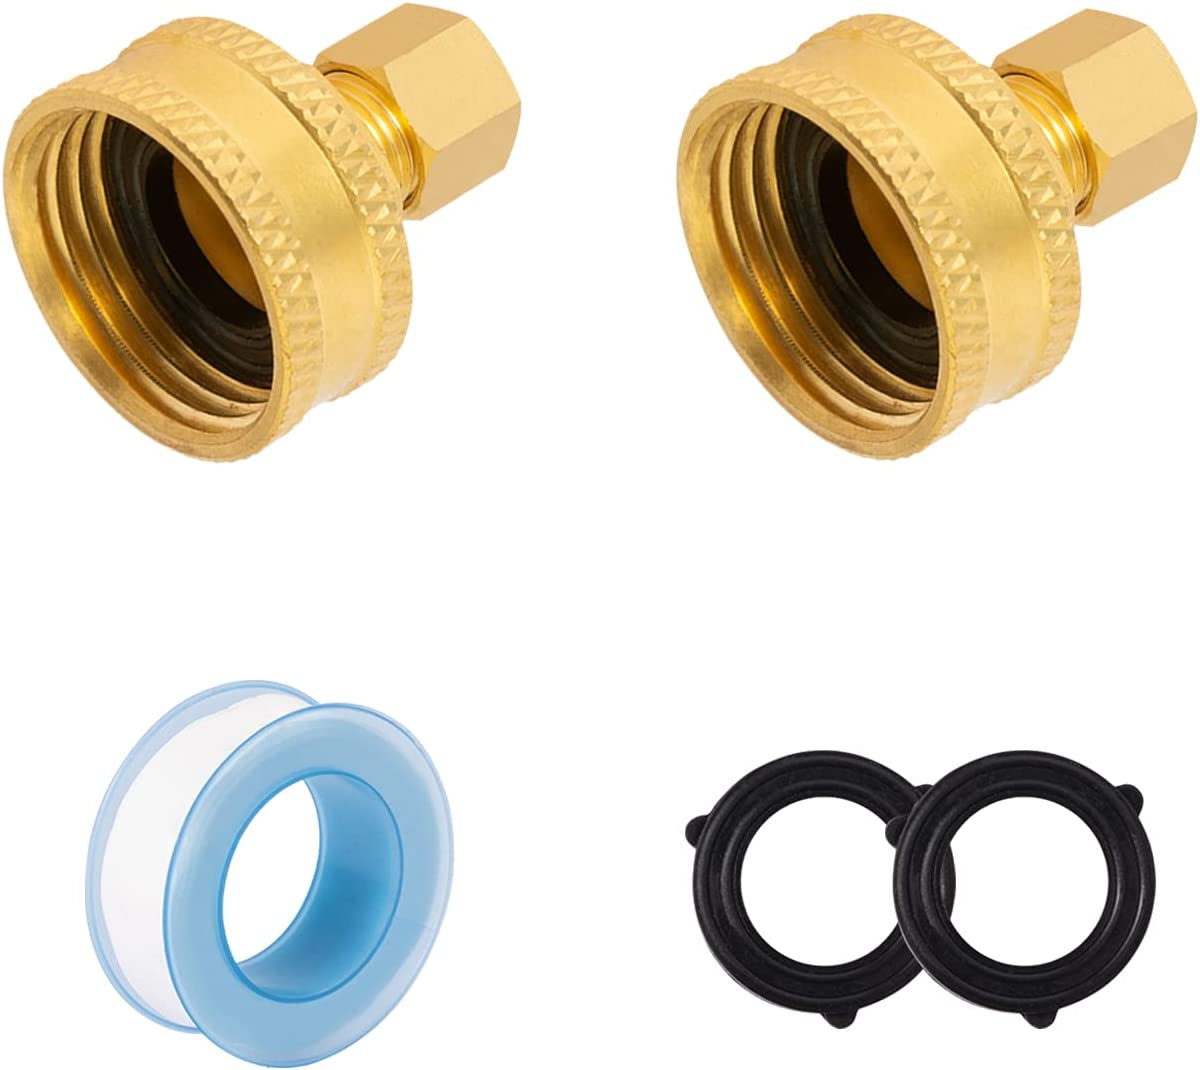 SUNGATOR 2-Pack 3/4 Inch Female Garden Hose by 1/4 Inch Compression Brass Adapter, Lead Free Brass with Extra 2-Piece Rubber Rings and a Sealing Tape